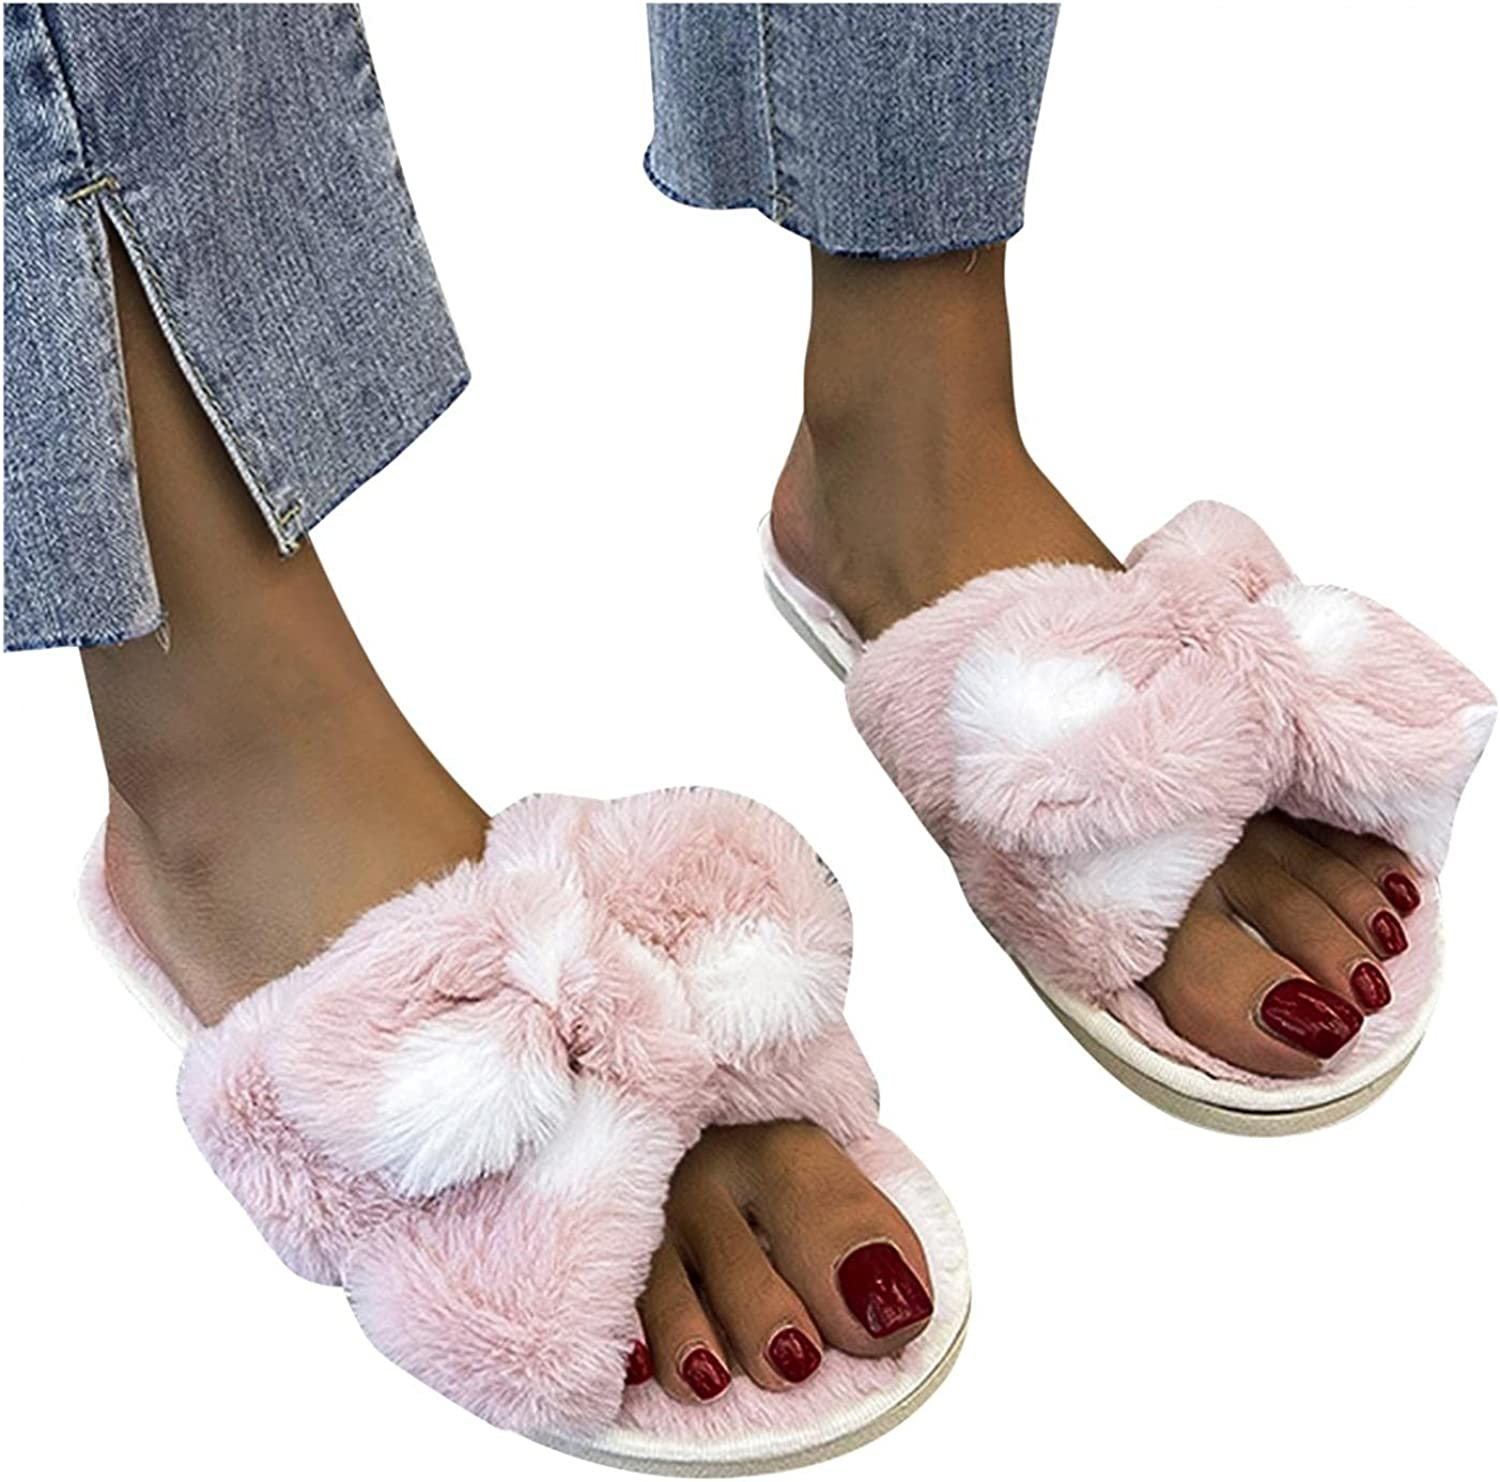 Gibobby Slippers for Women,Women's Fashion Memory Foam Open Toe House Slippers Fuzzy Bowknot Slip On Indoor Outdoor House Shoes